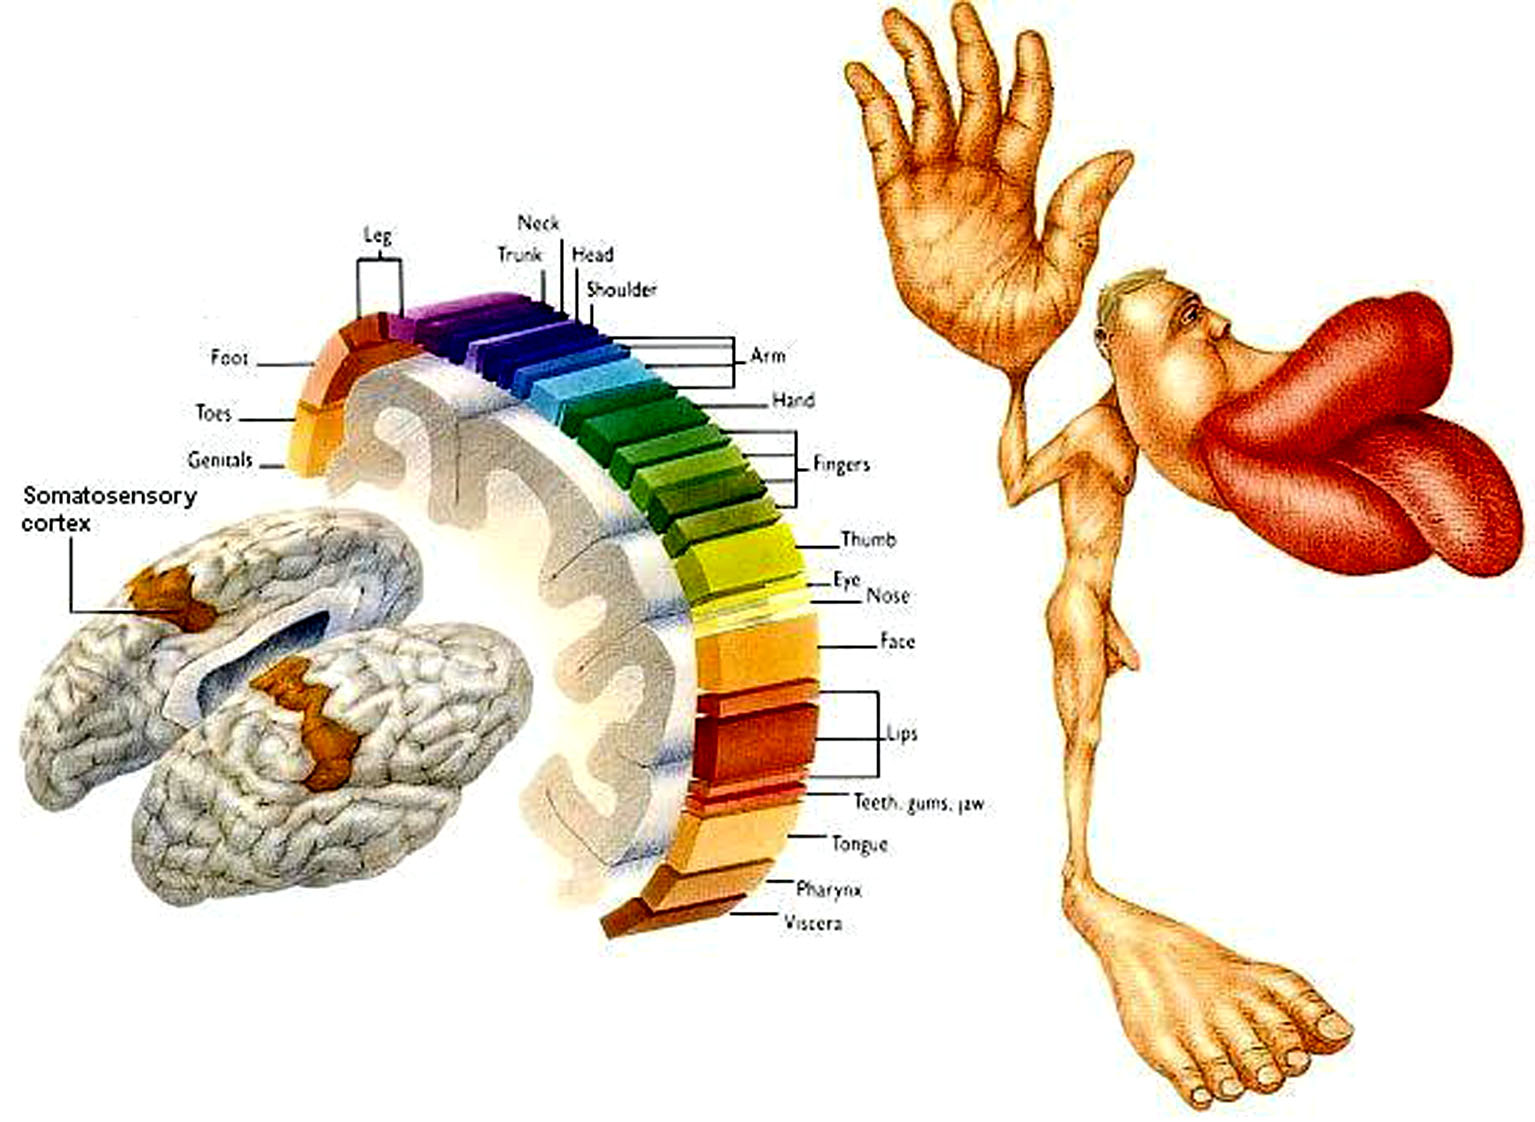 foot nerve endings diagram house wiring diagrams with pictures ein bewusster weg zur selbsthilfe bei bruxismus